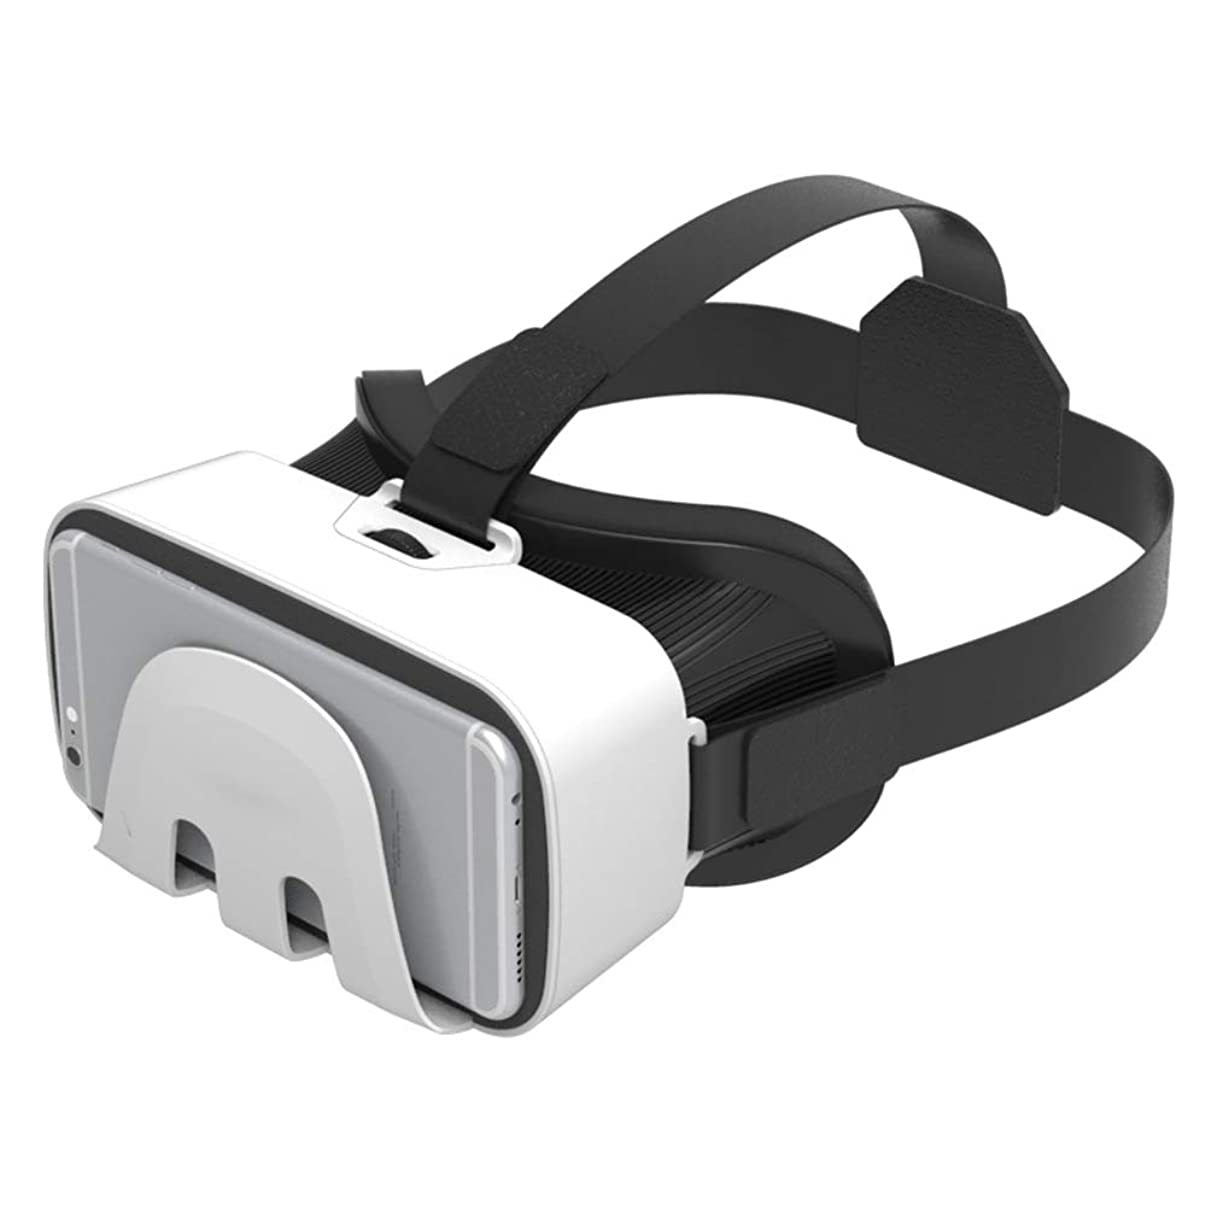 VR Headset,VR Goggles 120° View Moives&Games VR Glasses, VR Headset for iPhone Compatible with 4.7-6.0 Inches iPhone XS/X/8/8 Plus/7/7Plus/6/6Plus/5, VR Headset for Android Phone Like Samsung (White)